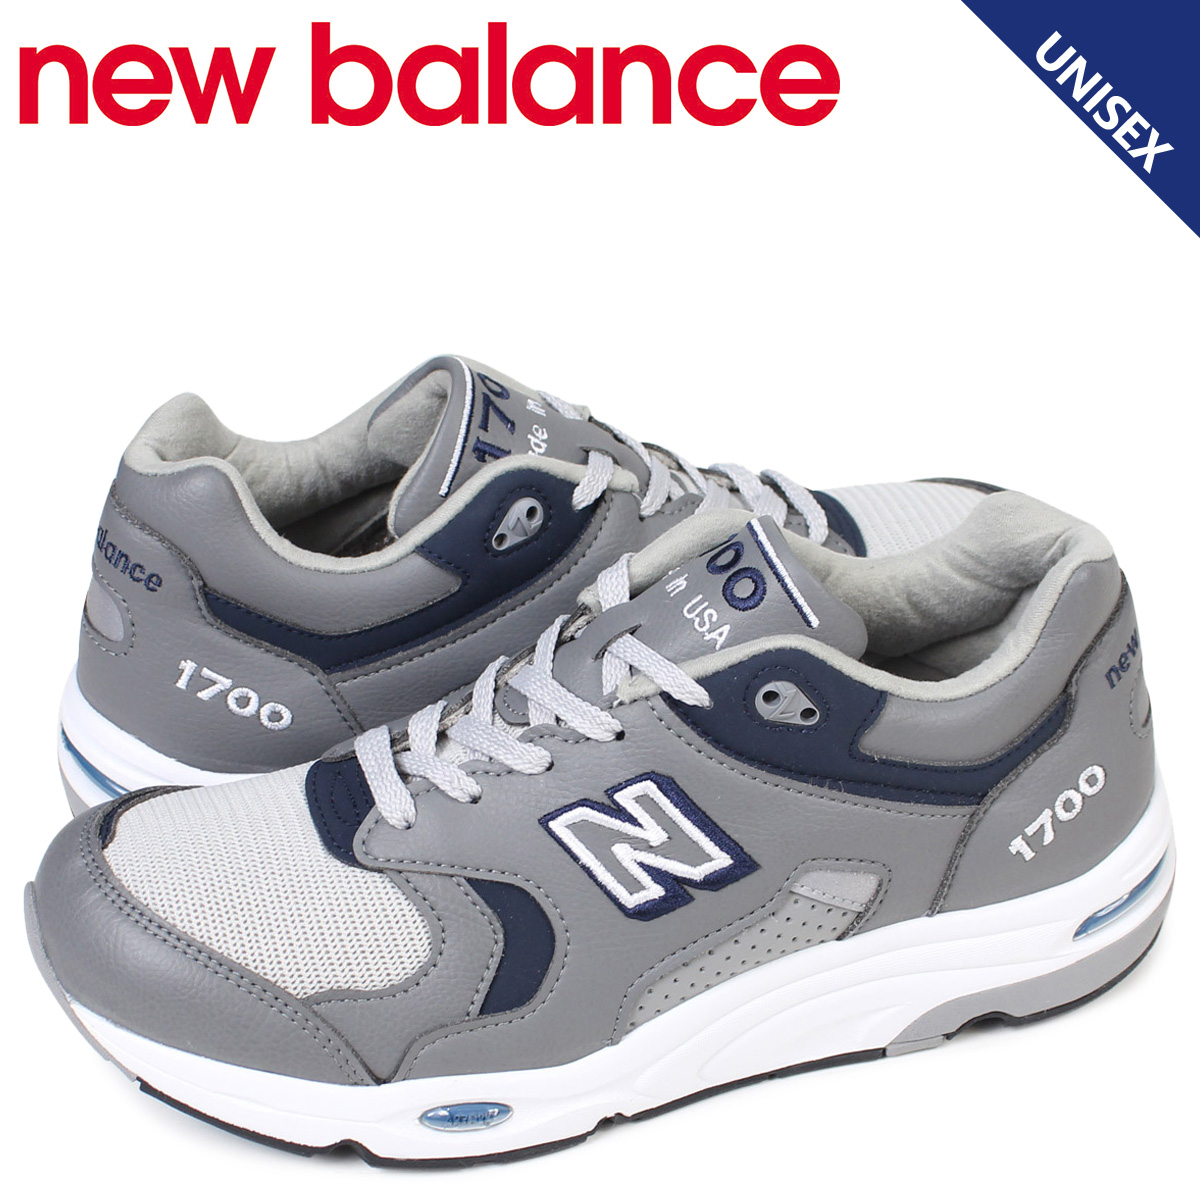 new balance 1700 men's lady's New Balance sneakers M1700GRA D Wise MADE IN USA gray